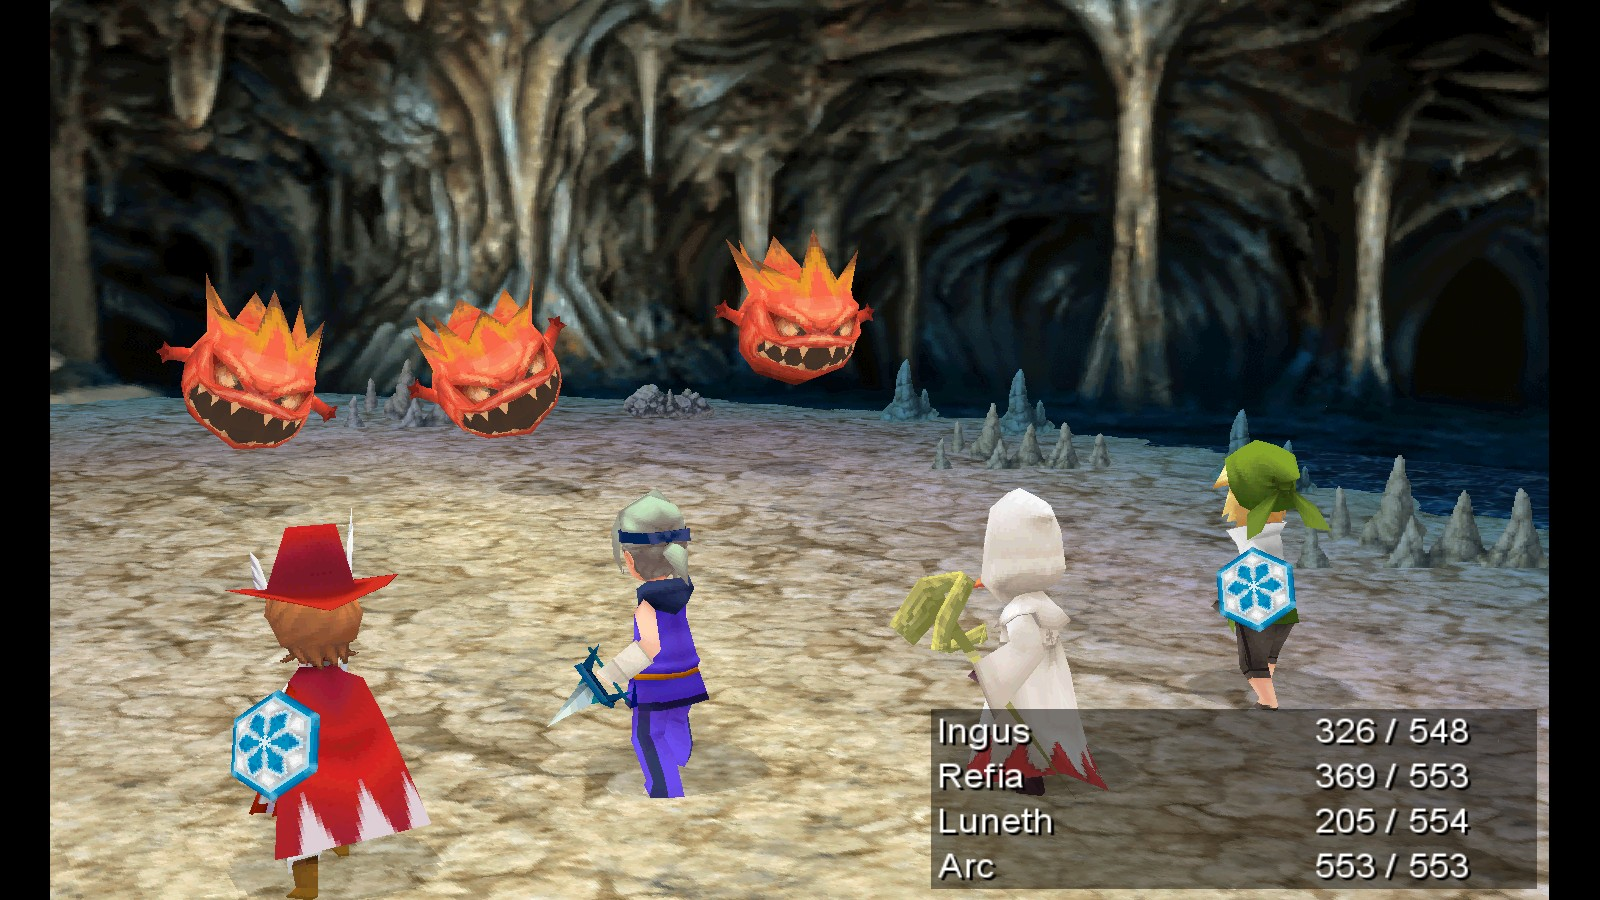 Final Fantasy IIIs 3D Remake Coming To PC Via Steam RPG Site